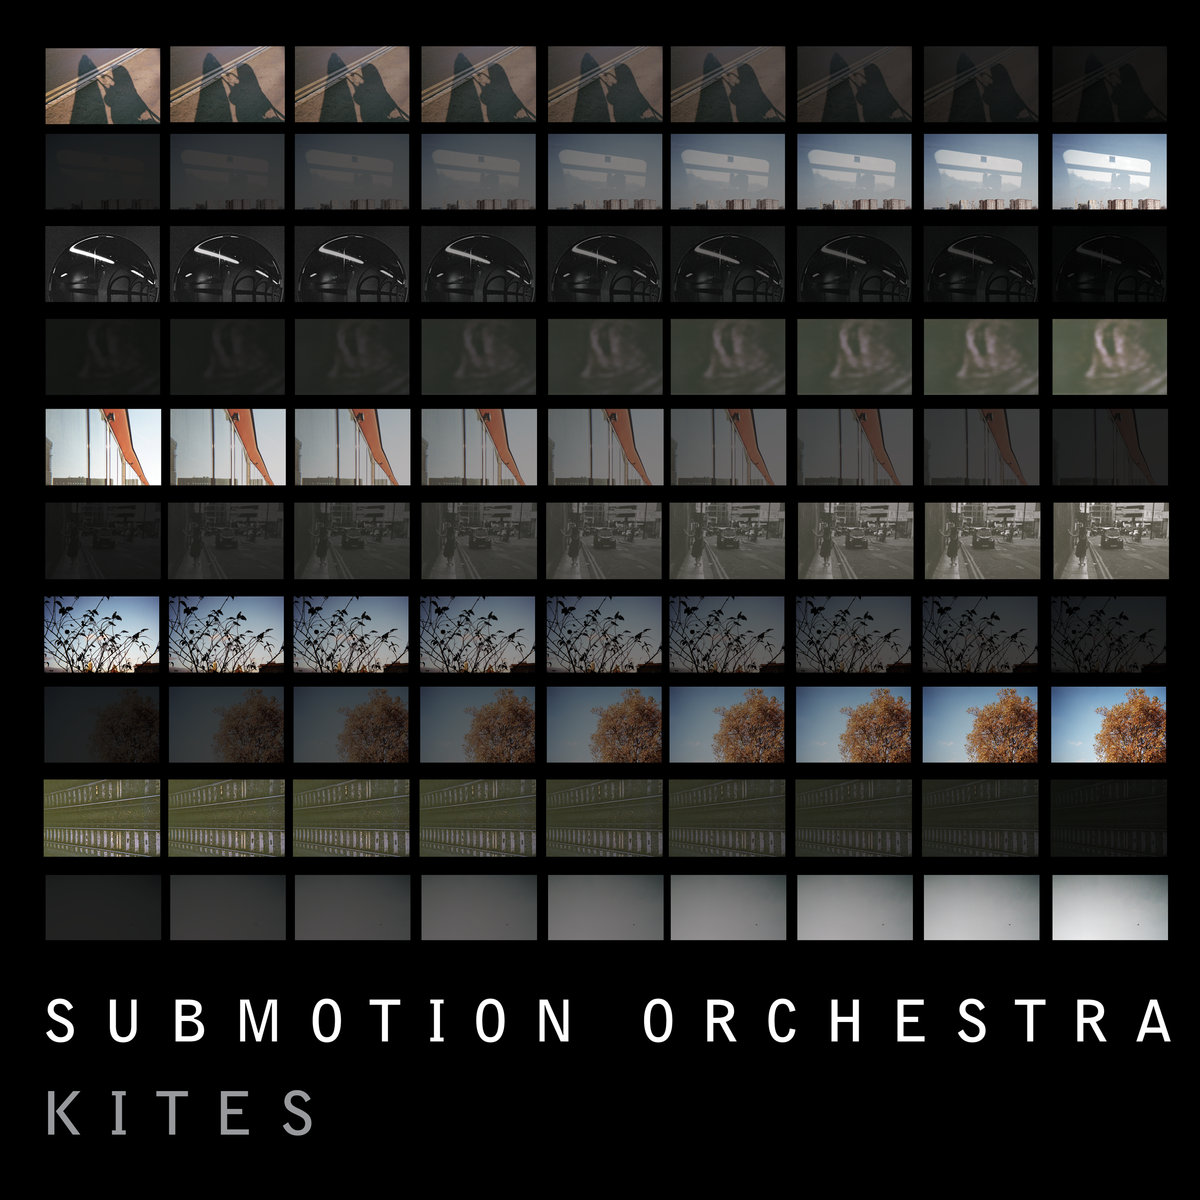 submotion-orchestra-kites-cover.jpg